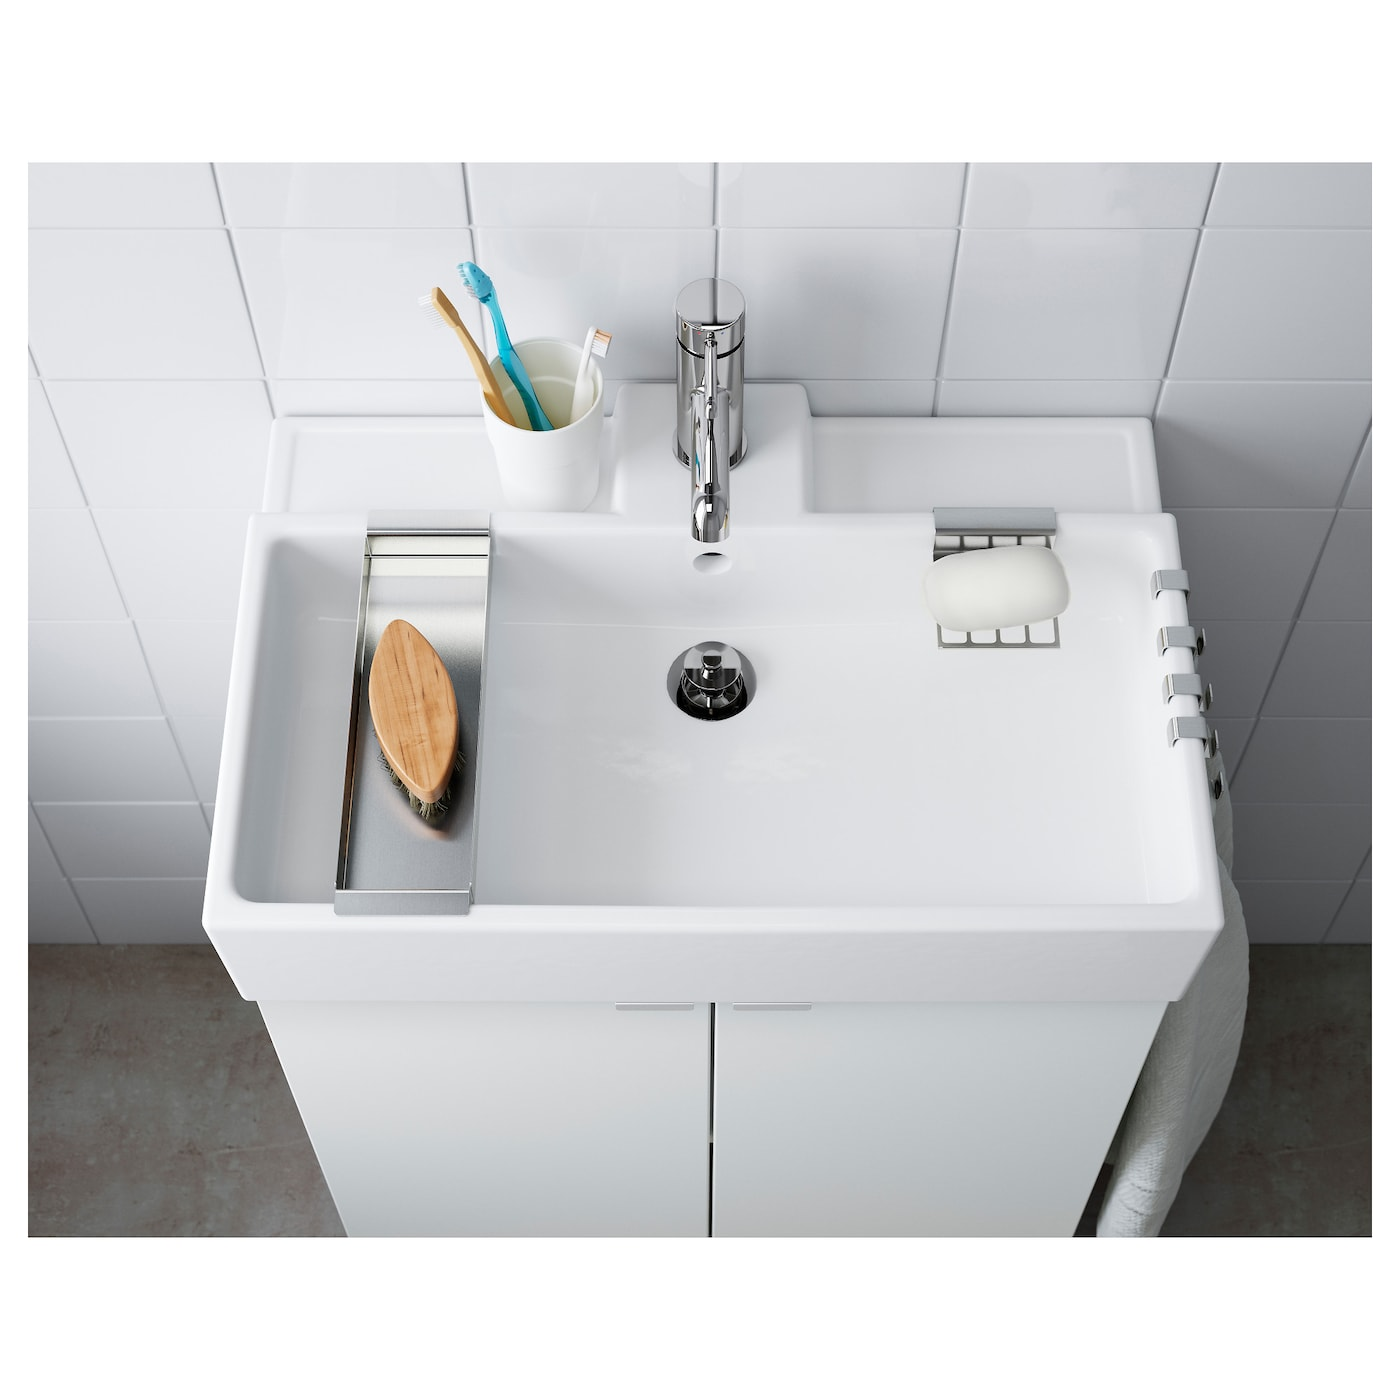 IKEA LILLÅNGEN single wash-basin 10 year guarantee. Read about the terms in the guarantee brochure.